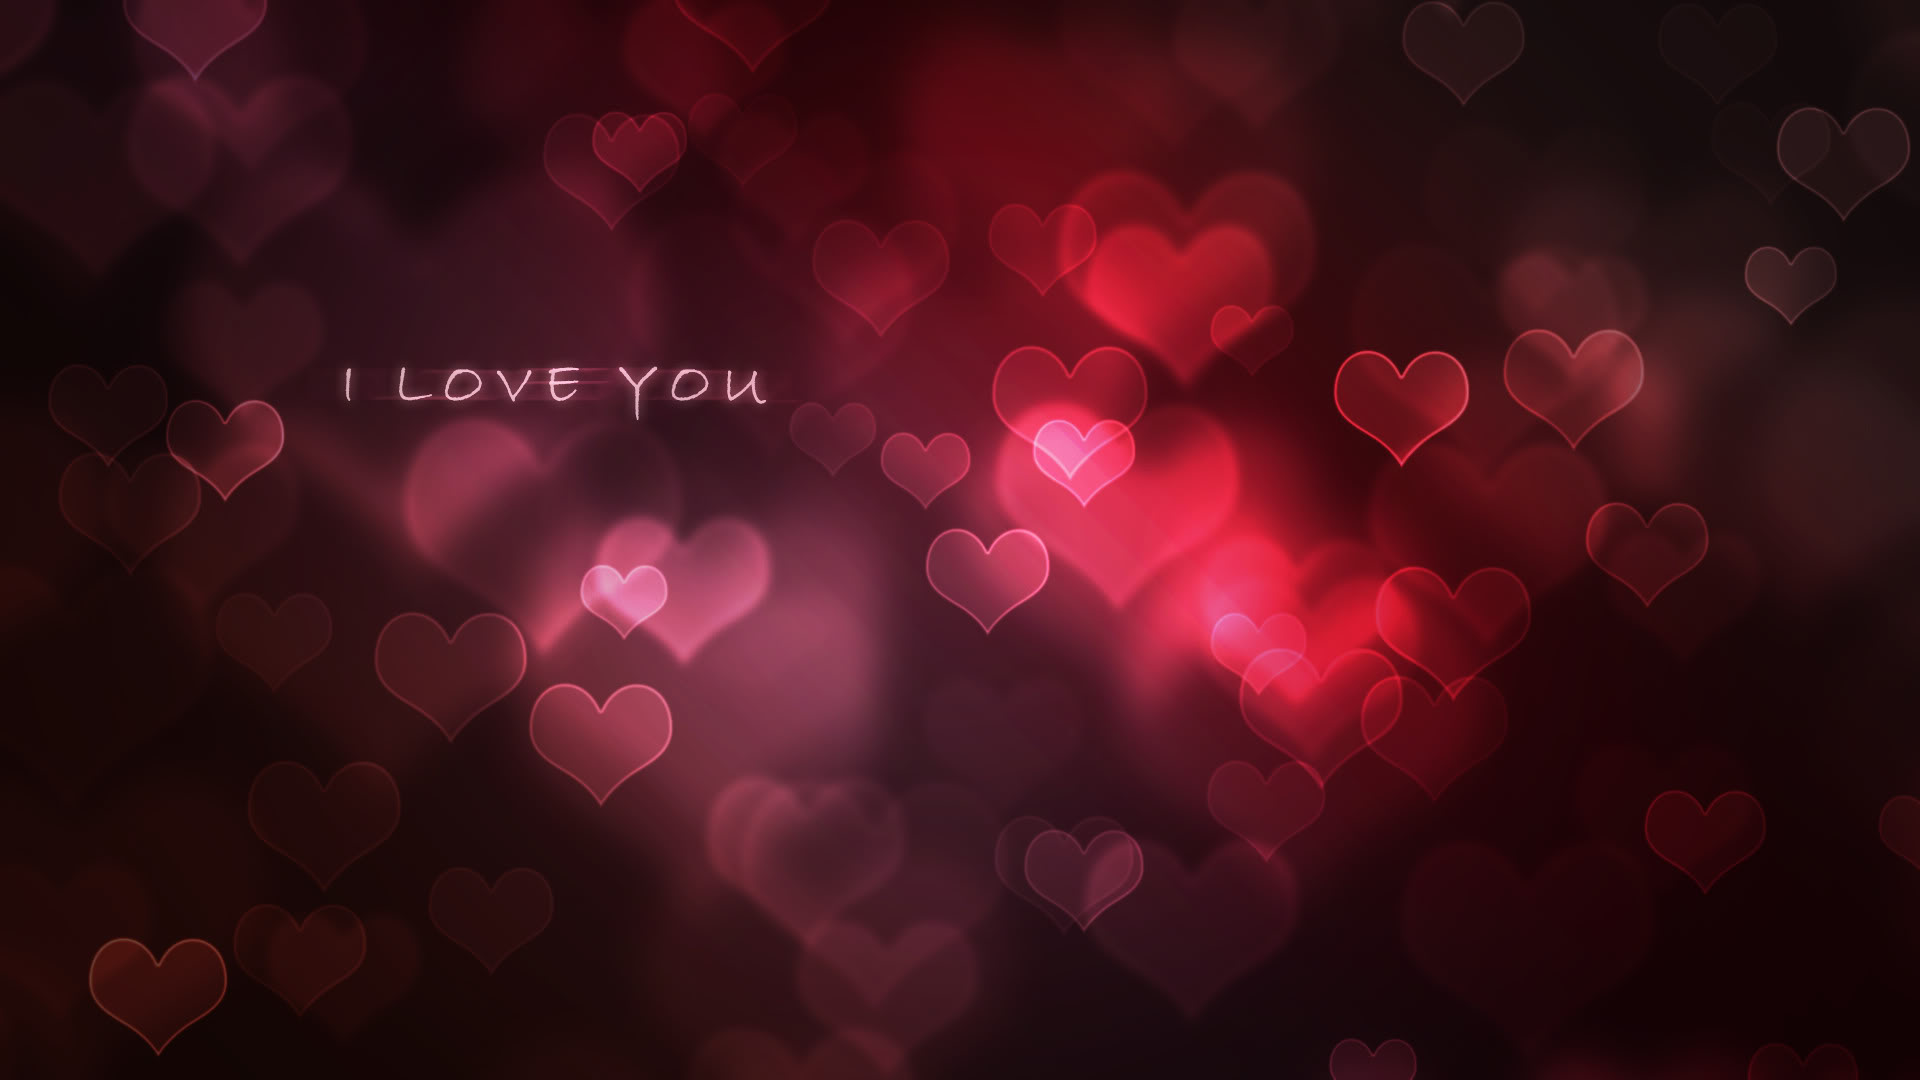 Love Wallpaper Backgrounds computer : Awesome Love Backgrounds 18163 1920x1080 px ~ HDWallSource.com